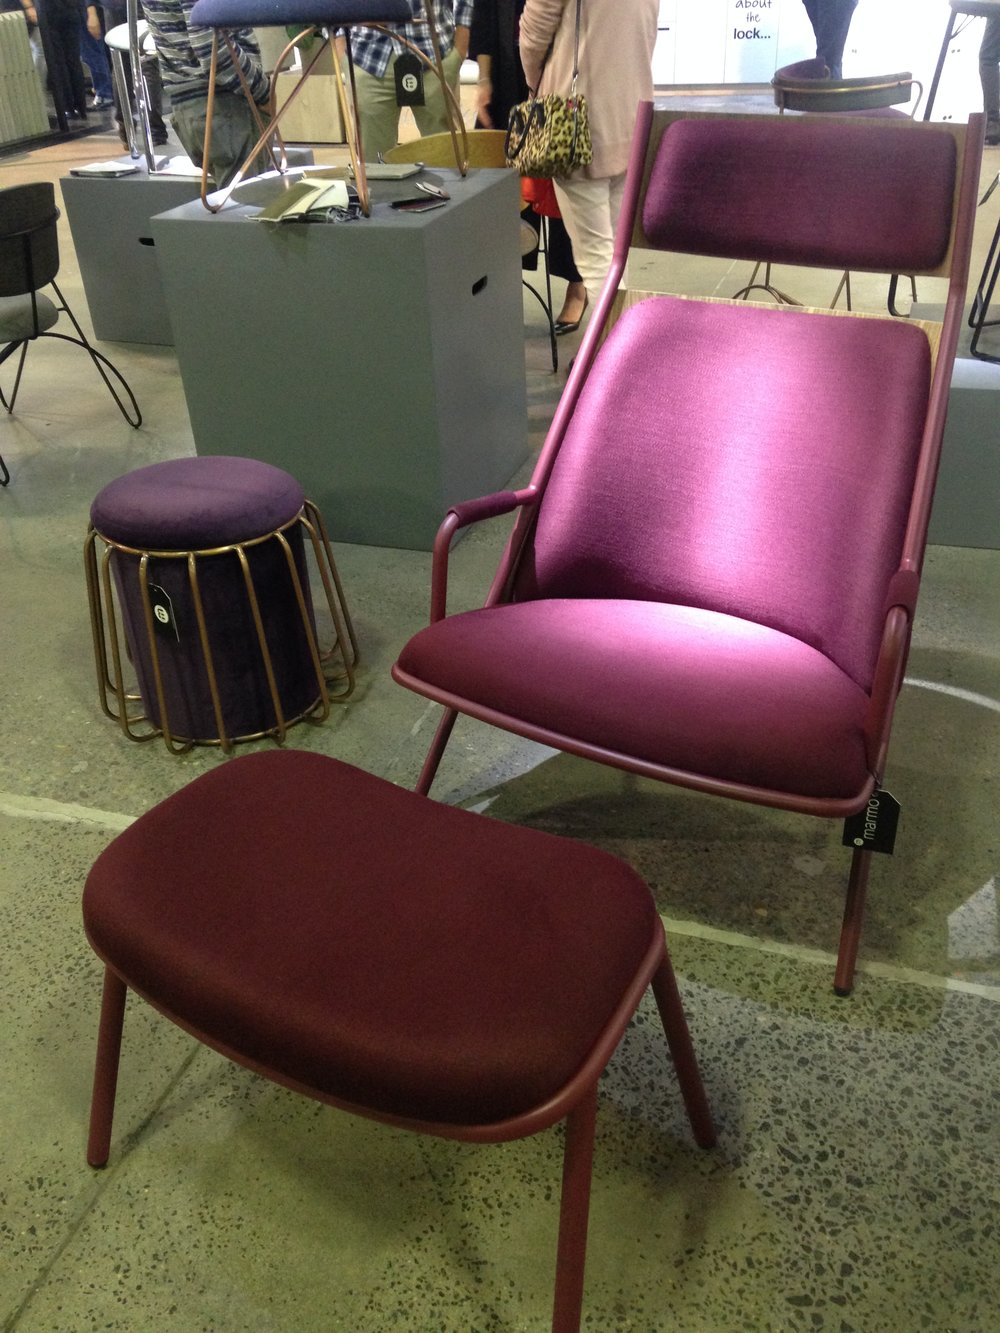 Marmo Furniture caught our eye with their bright, bold furniture pieces that you just want to touch!